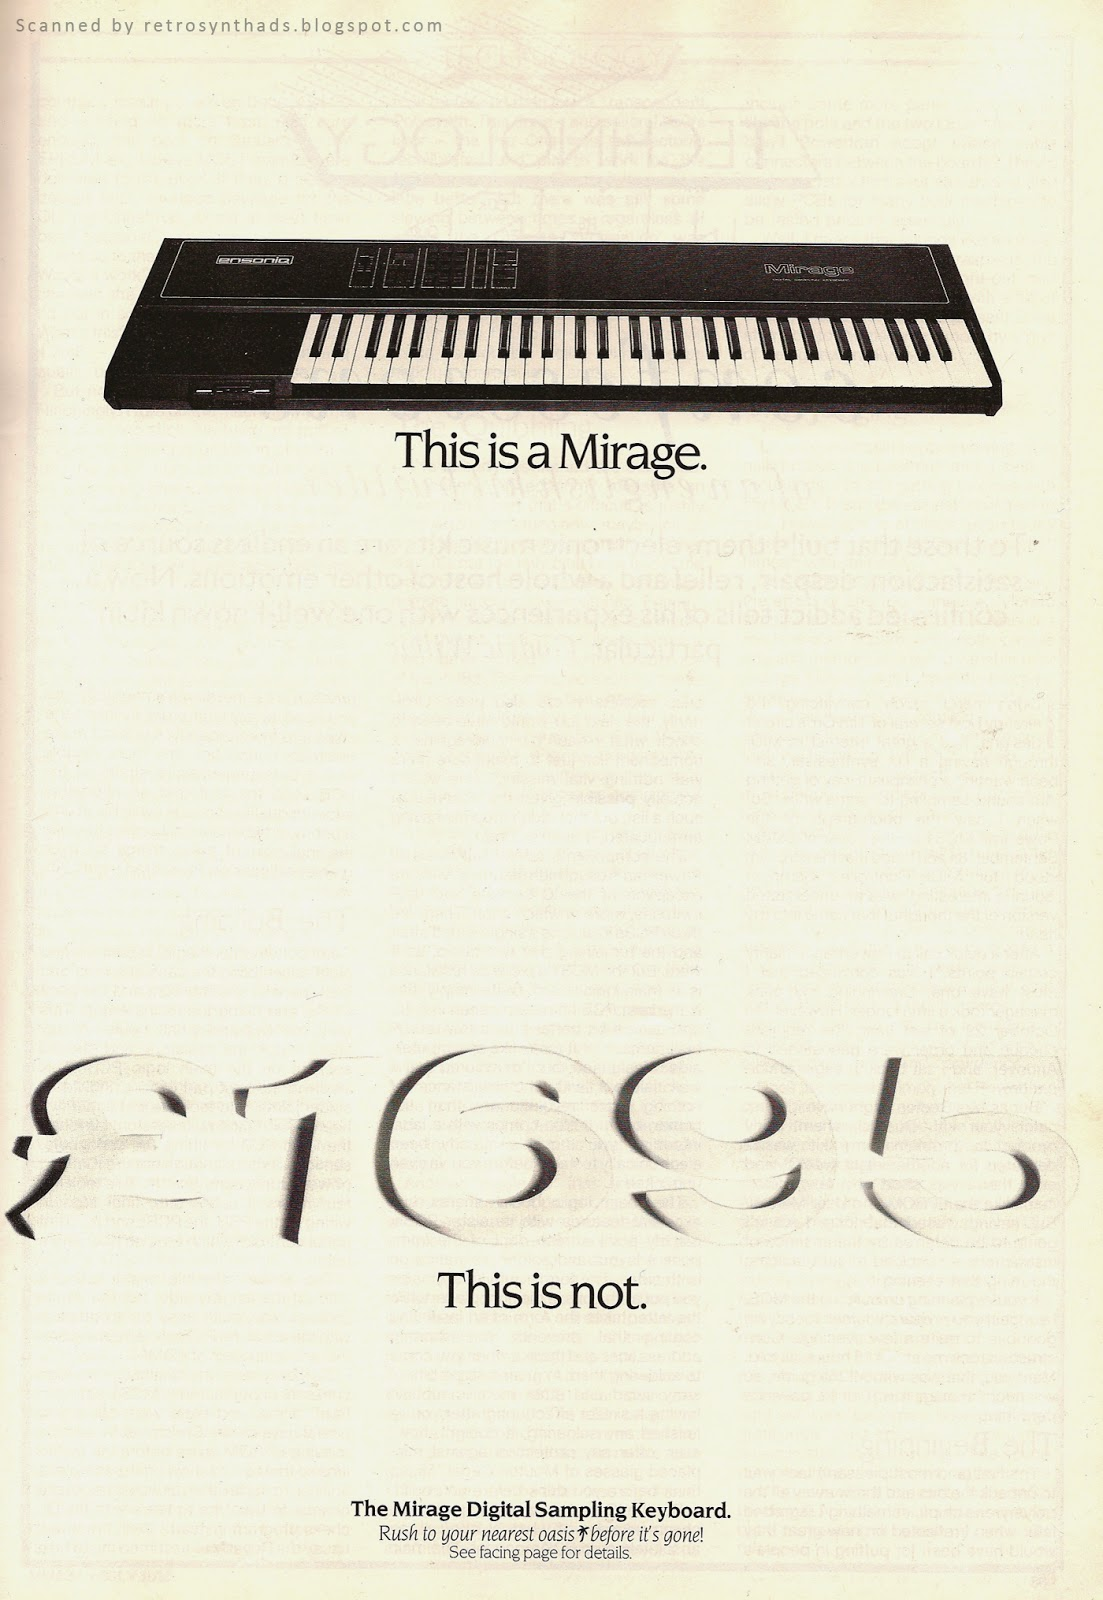 http://retrosynthads.blogspot.ca/2014/04/ensoniq-mirage-this-is-mirage-this-is.html